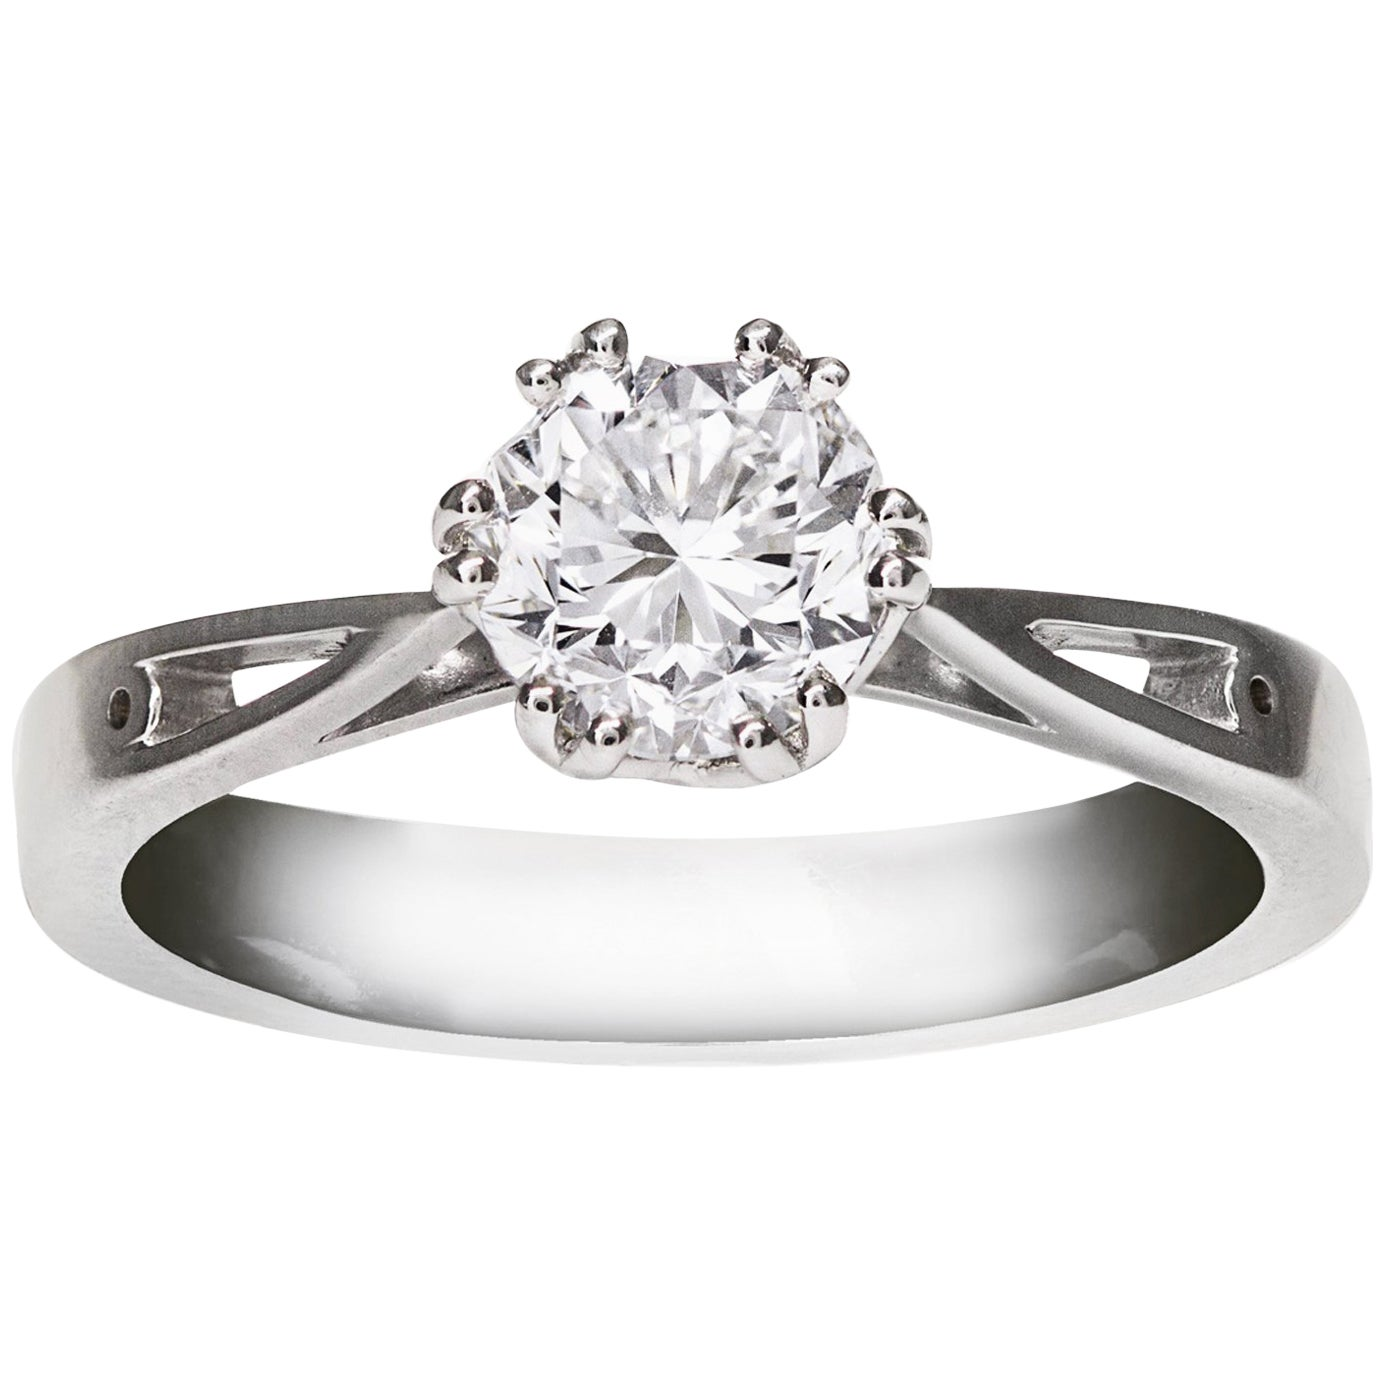 GIA Certified 1.12 Carat Round Cut Diamond Solitaire Engagement Ring